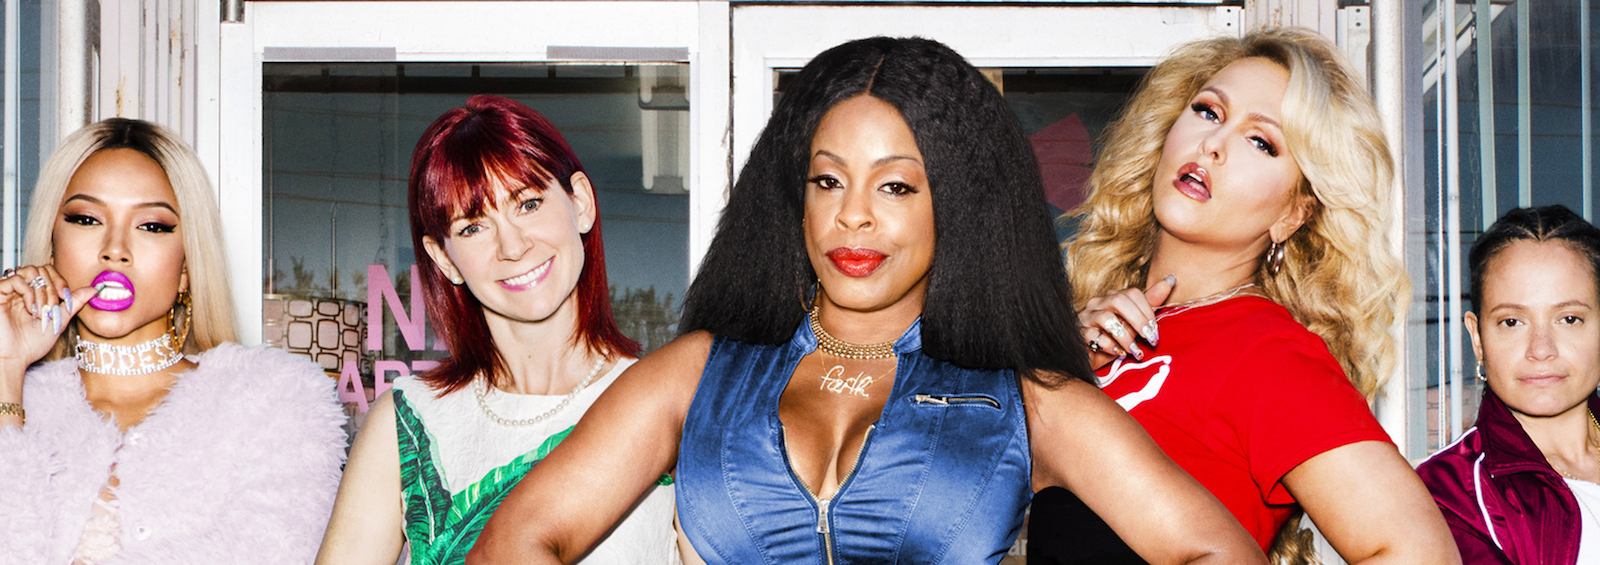 Congratulations to Claws on their 2018 ABFF Honors Nomination!